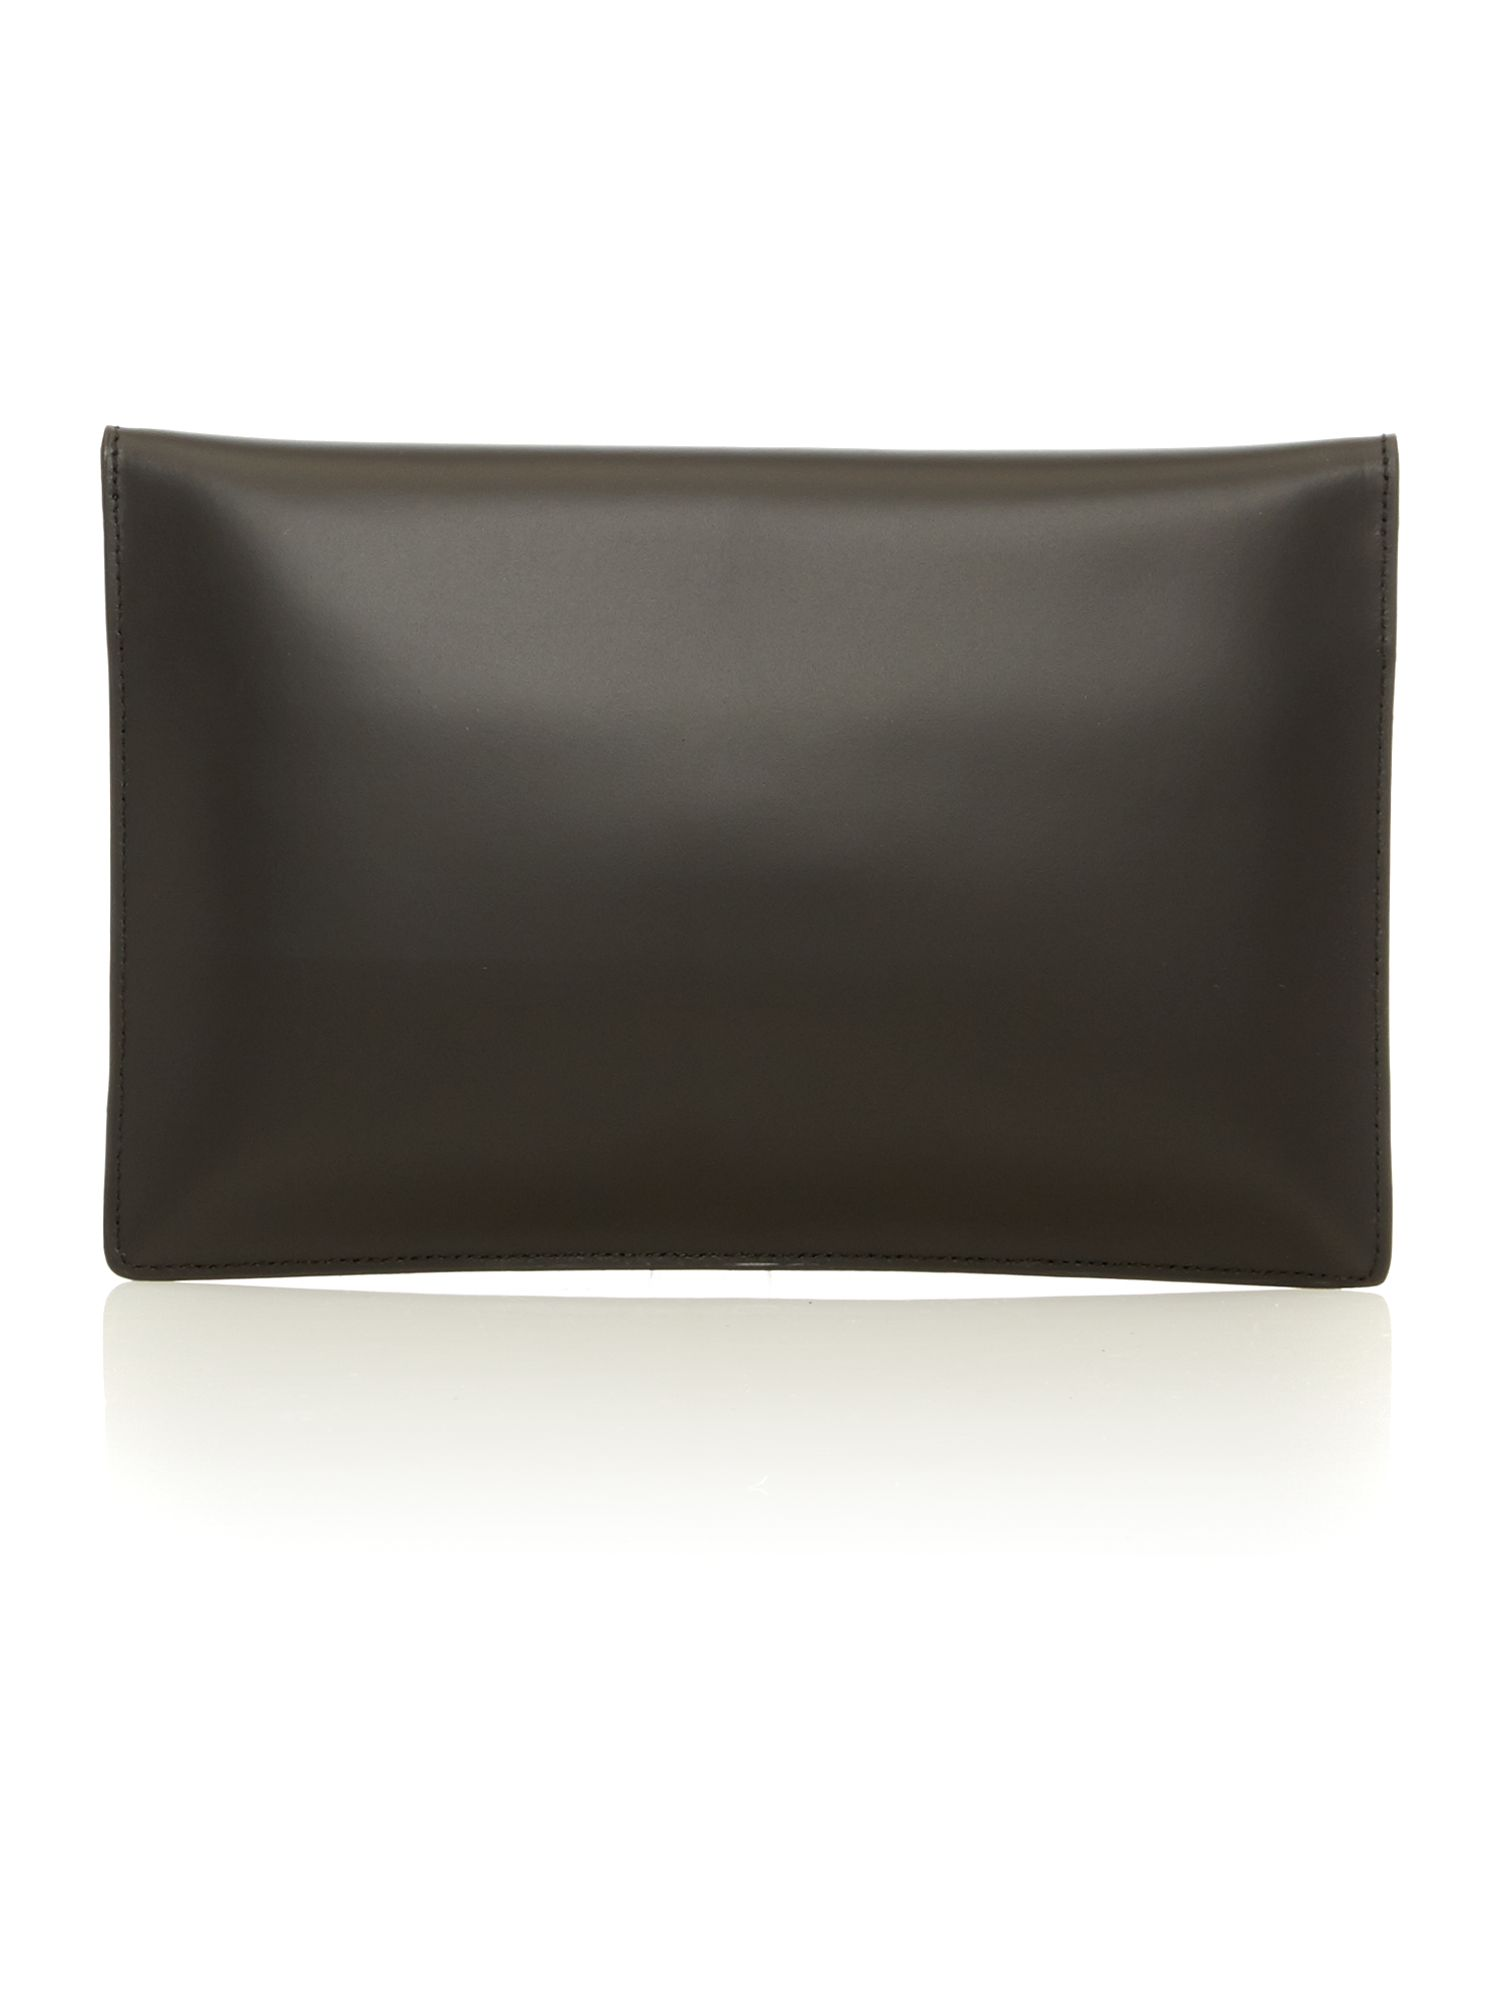 Private black clutch